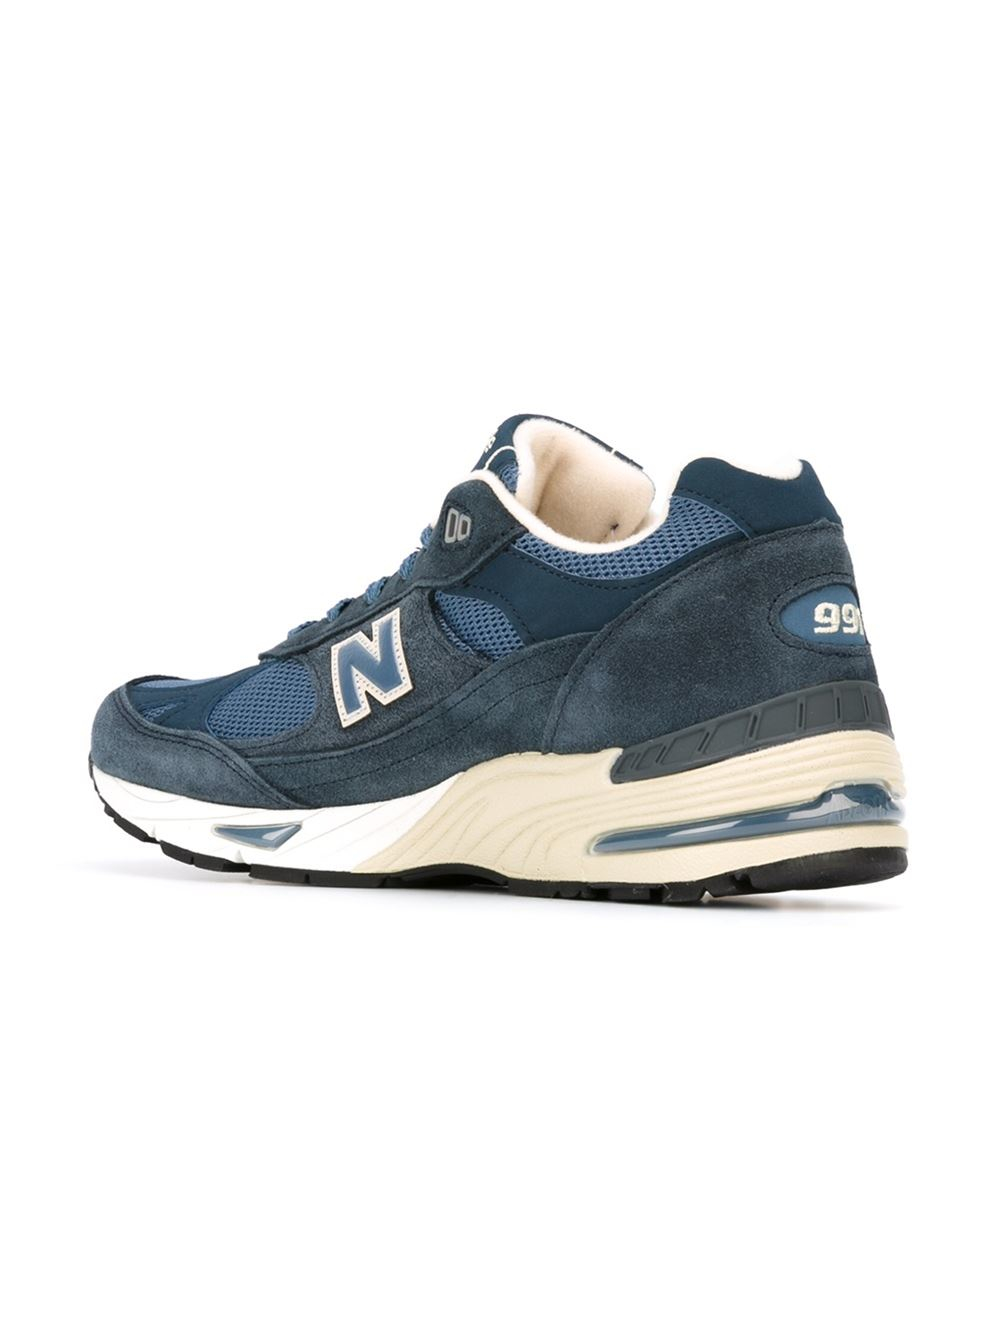 new balance 39 991 39 sneakers in blue for men lyst. Black Bedroom Furniture Sets. Home Design Ideas